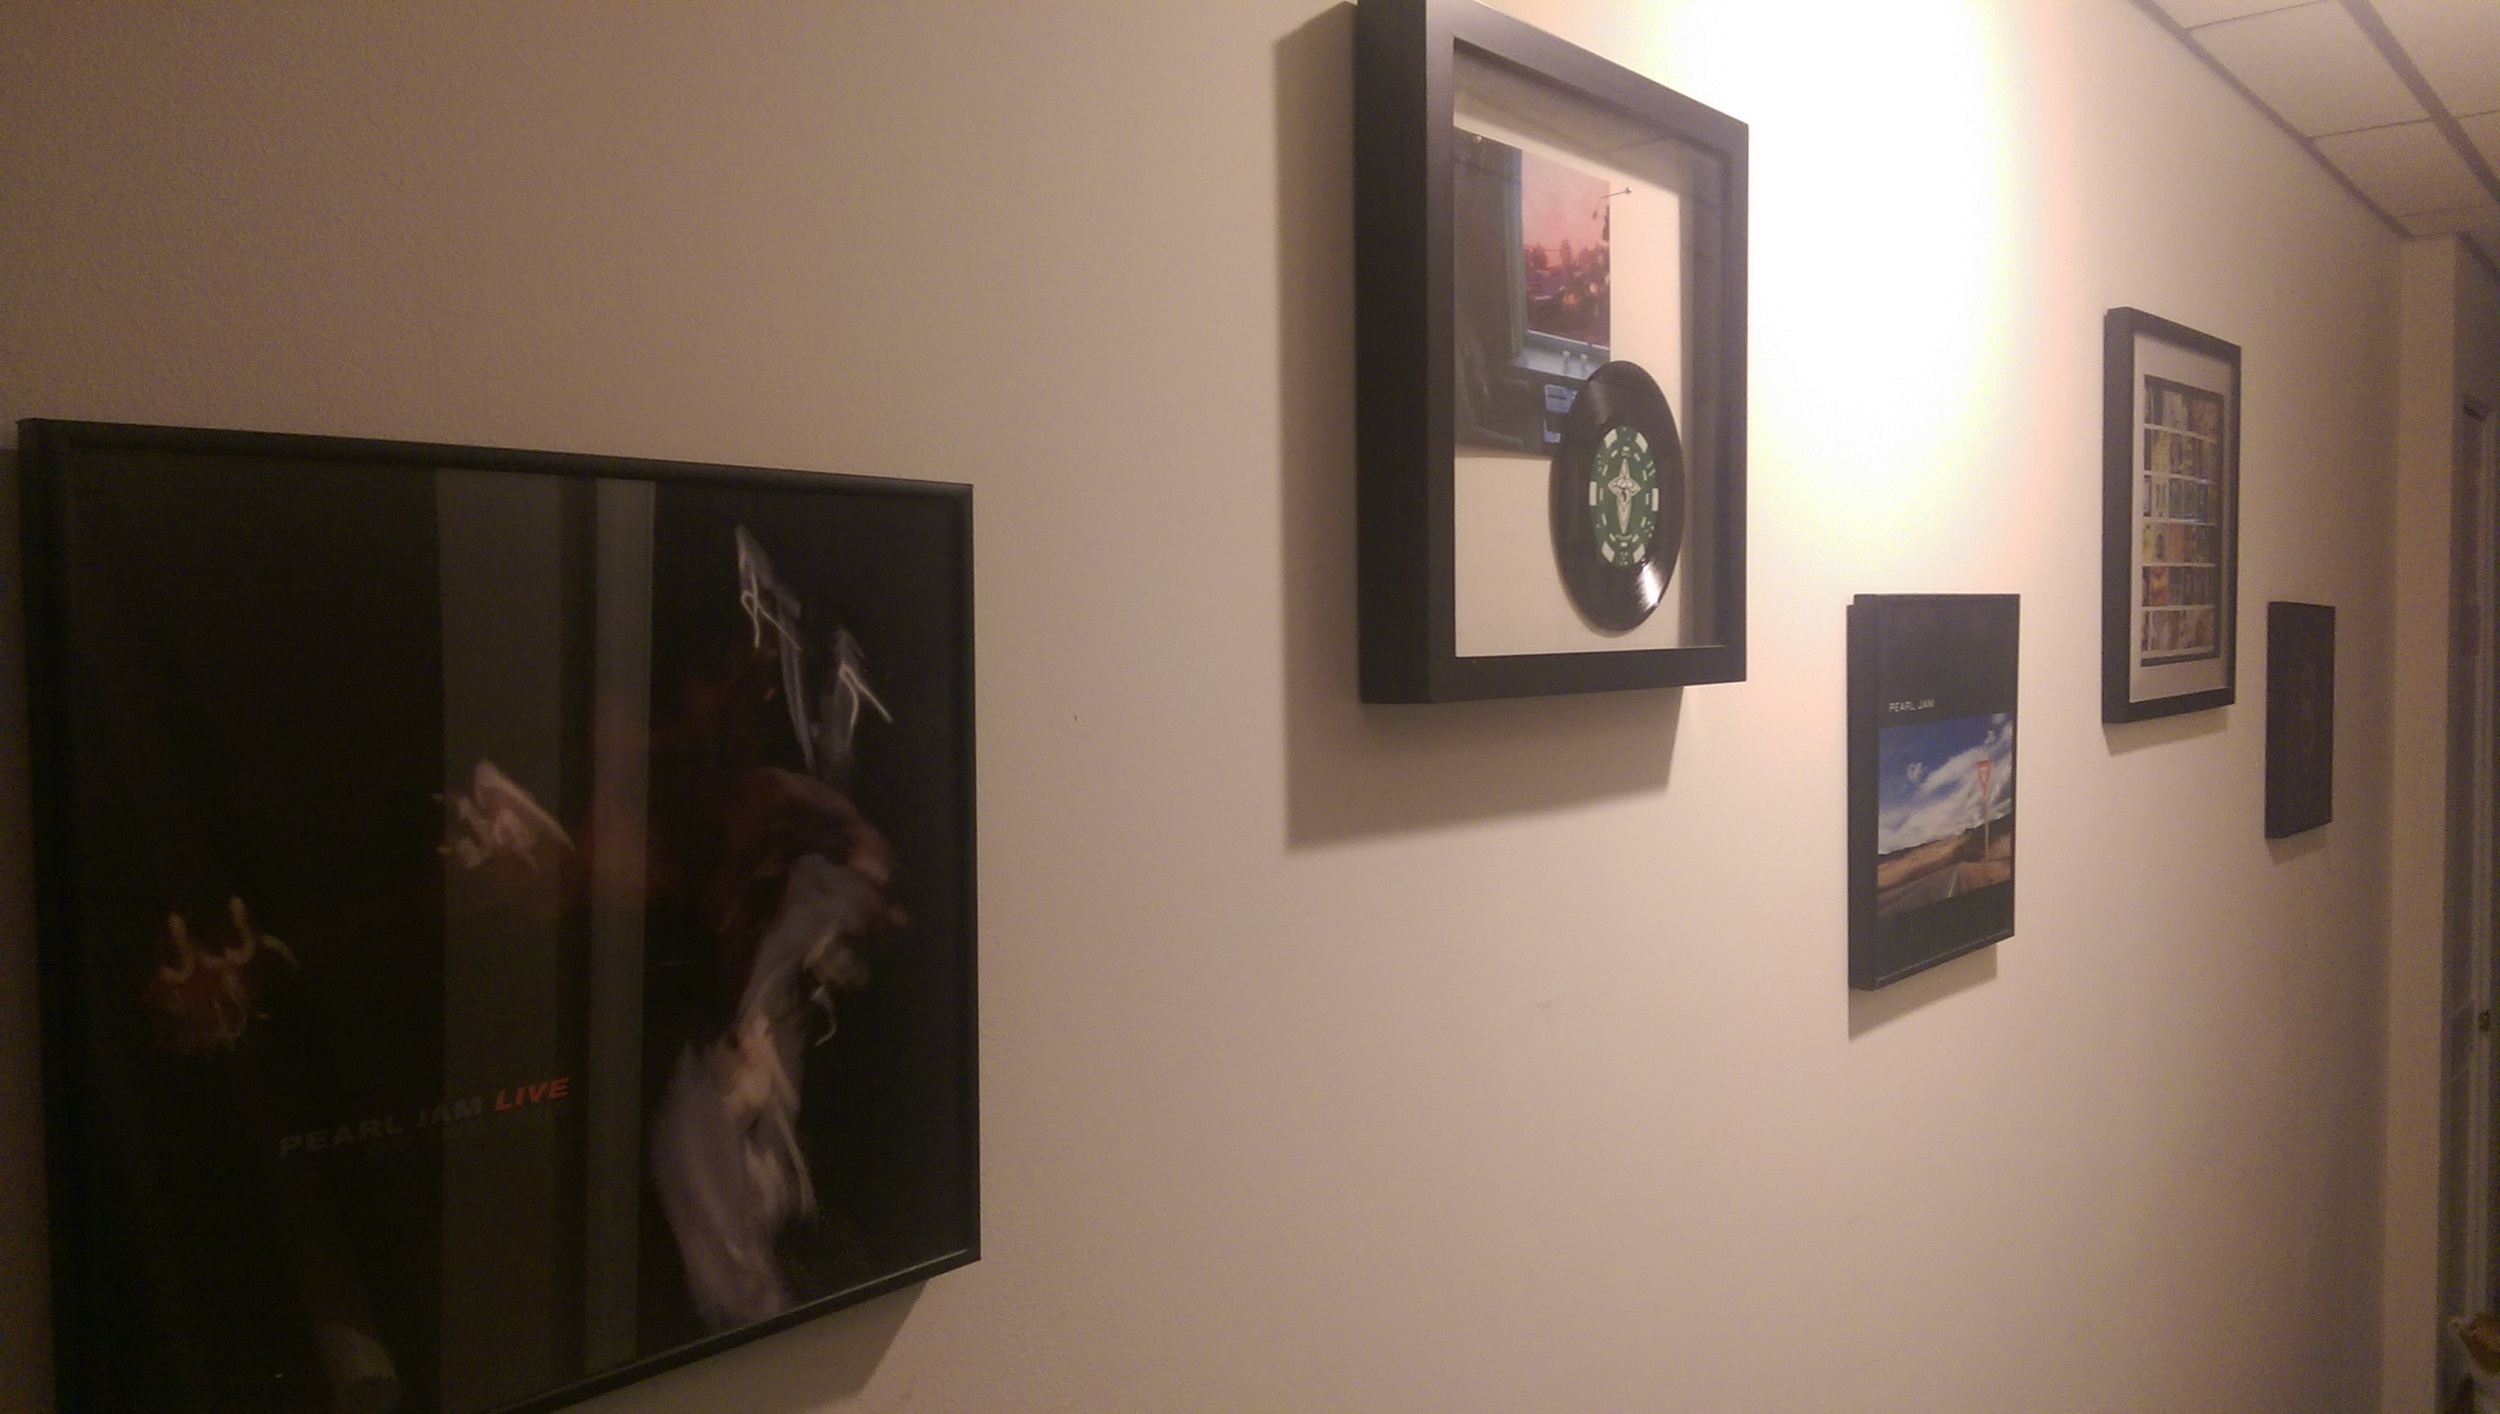 Framed Peal Jam vinyls covering the basement walls